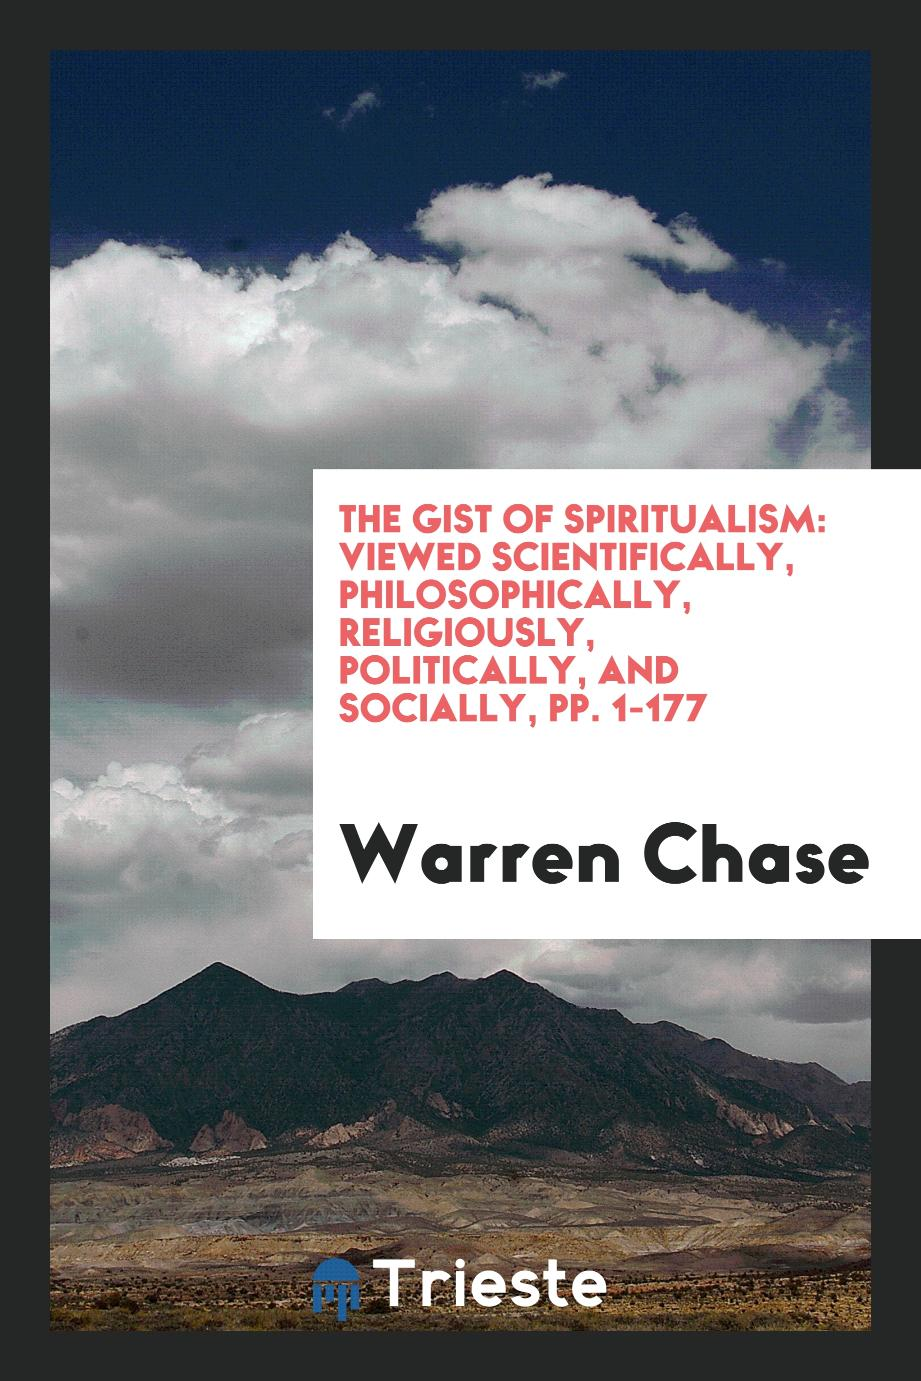 The Gist of Spiritualism: Viewed Scientifically, Philosophically, Religiously, Politically, and Socially, pp. 1-177